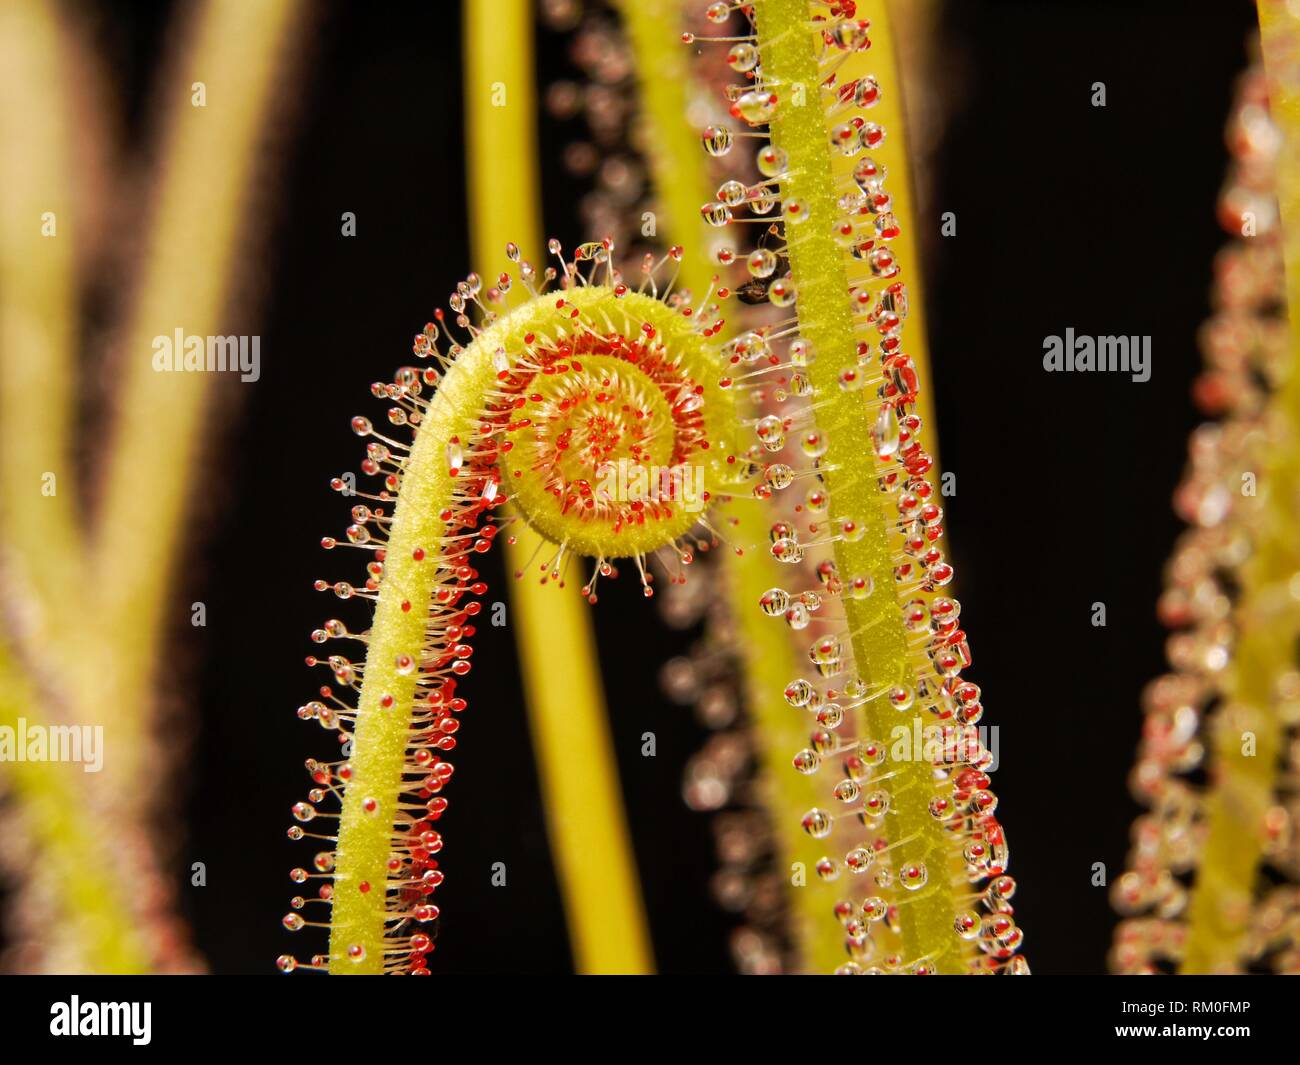 Macro image of Sundew tendrils on a black background, showing sticky substance used to trap insects. - Stock Image